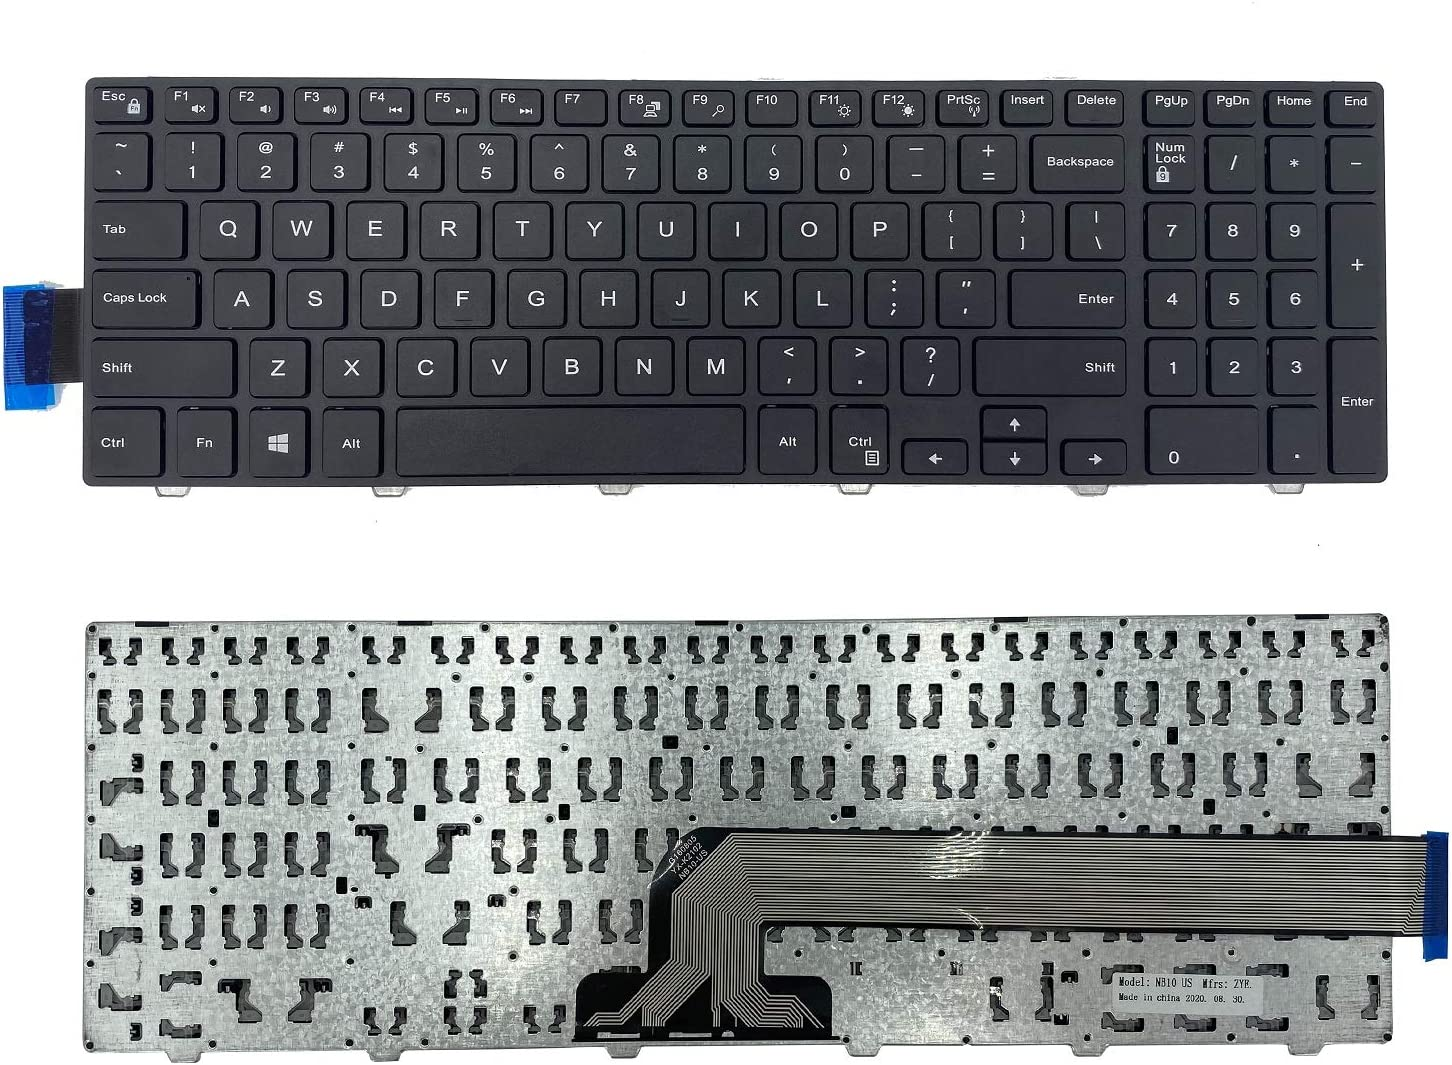 New US English Laptop Keyboard for Dell Inspiron 15 3000 5000 3541 3542 3543 5542 3550 5545 5547 3551 3552 3559 3565 3567 3551 3558 5566 5748, No Backlit